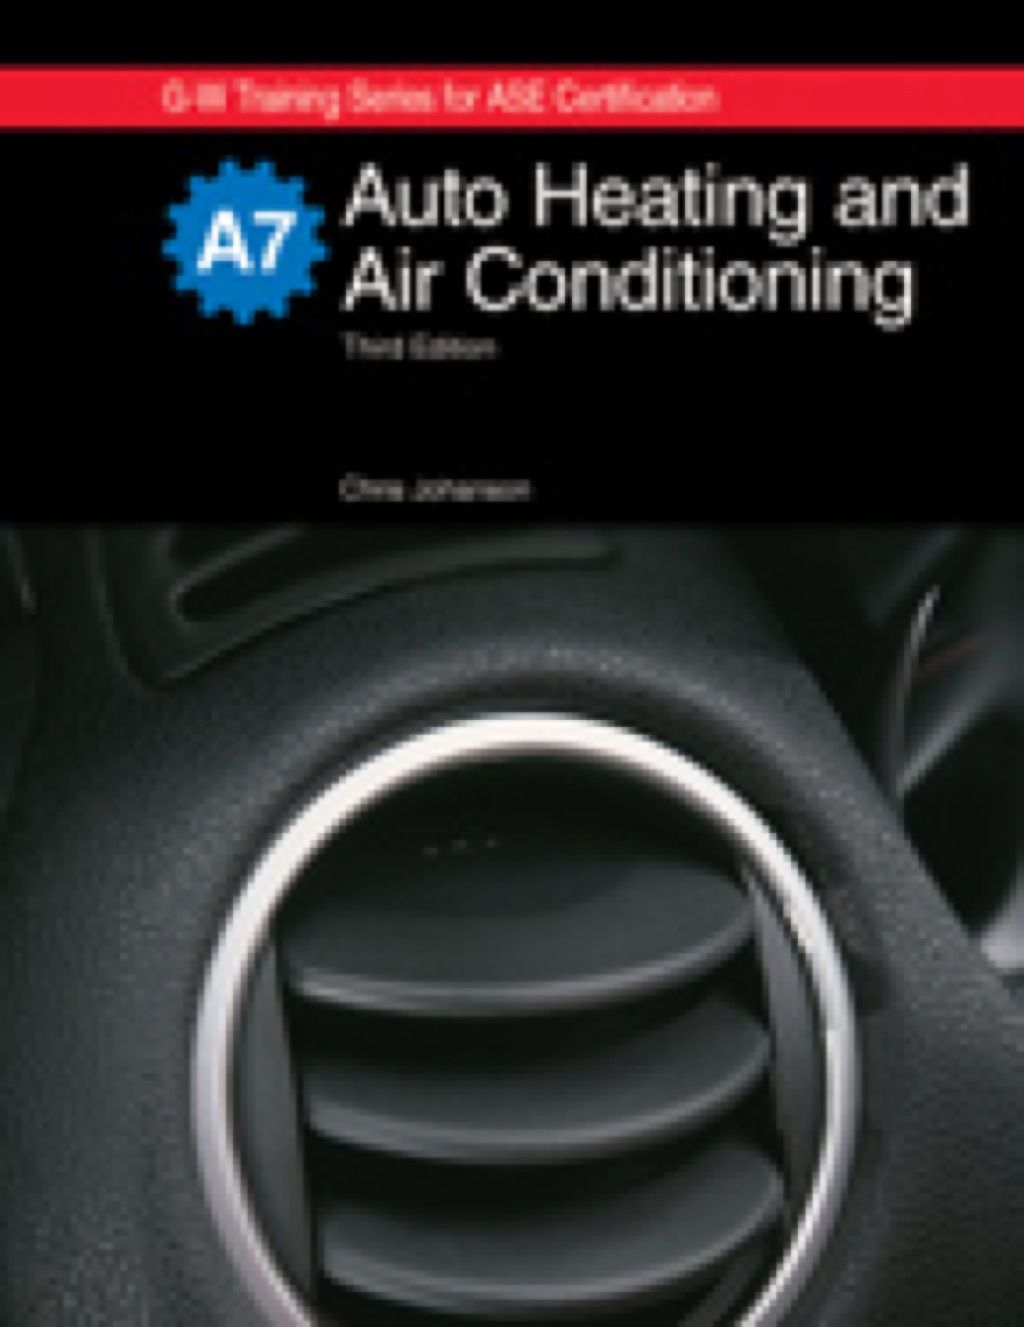 Auto Heating And Air Conditioning A7 Ebook Heating And Air